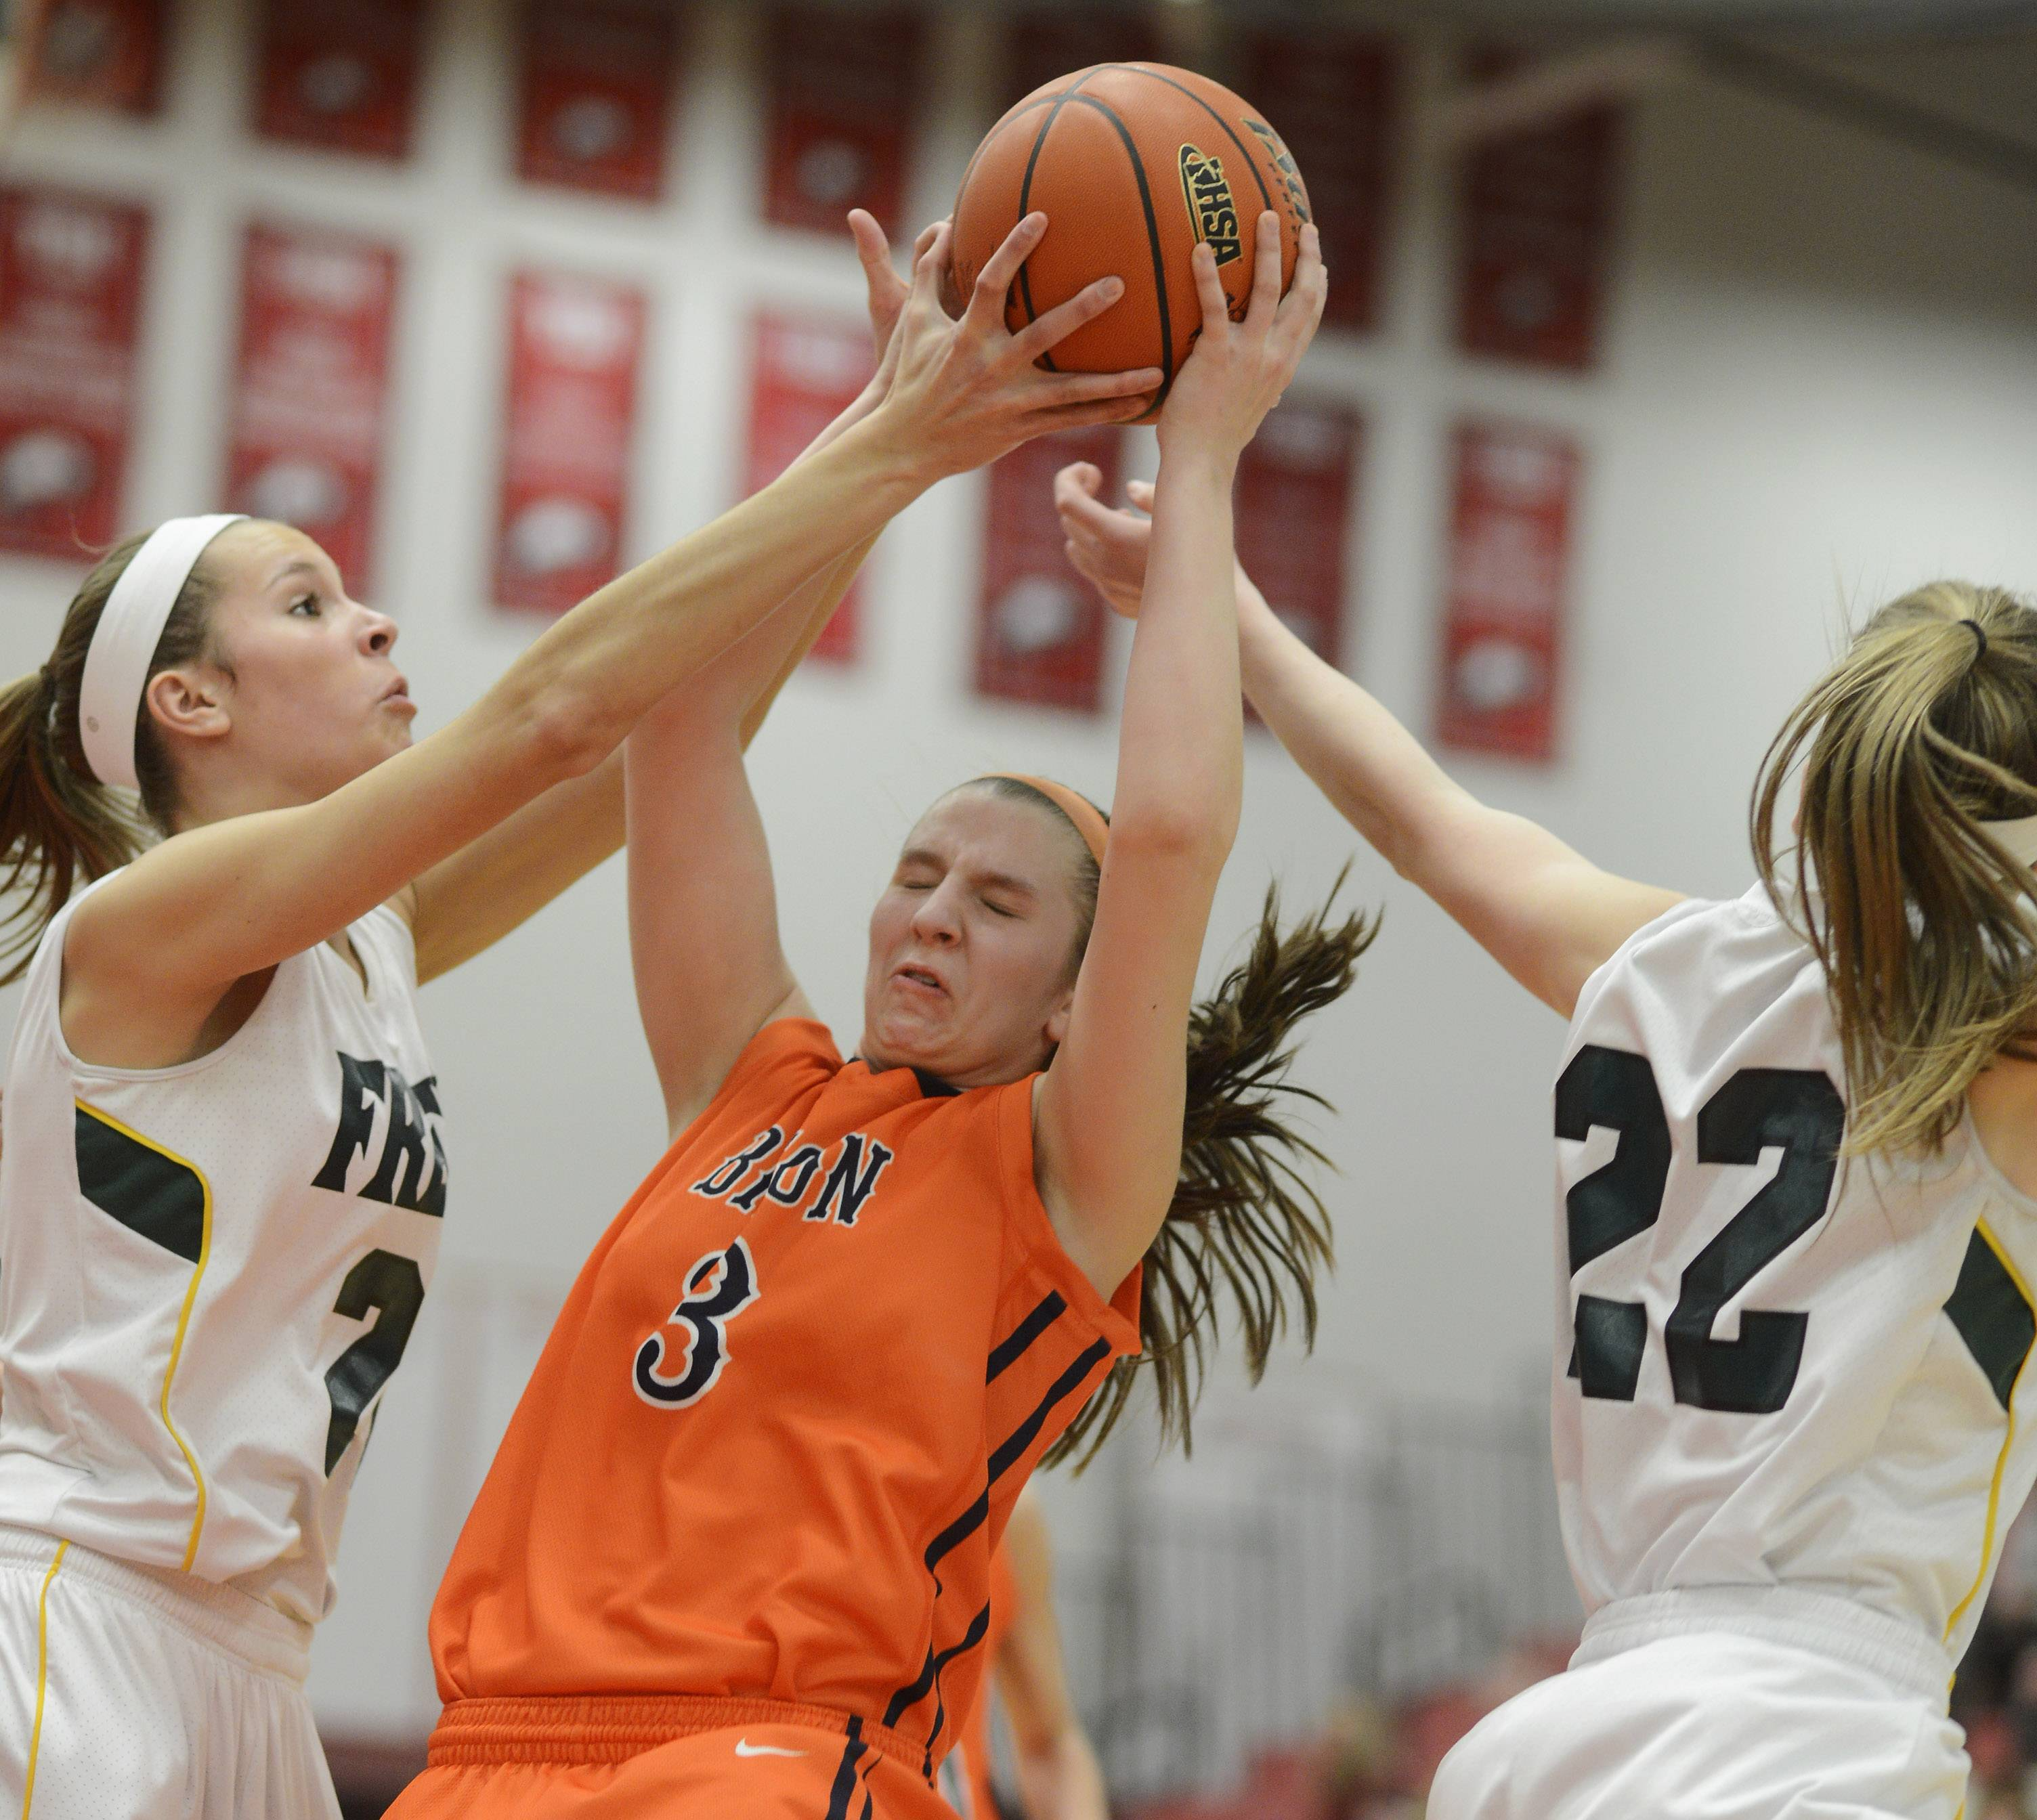 Buffalo Grove's Maddie Welter, middle, gets between Fremd's Grace Twrek, left, and Erin Lenahan for a rebound.